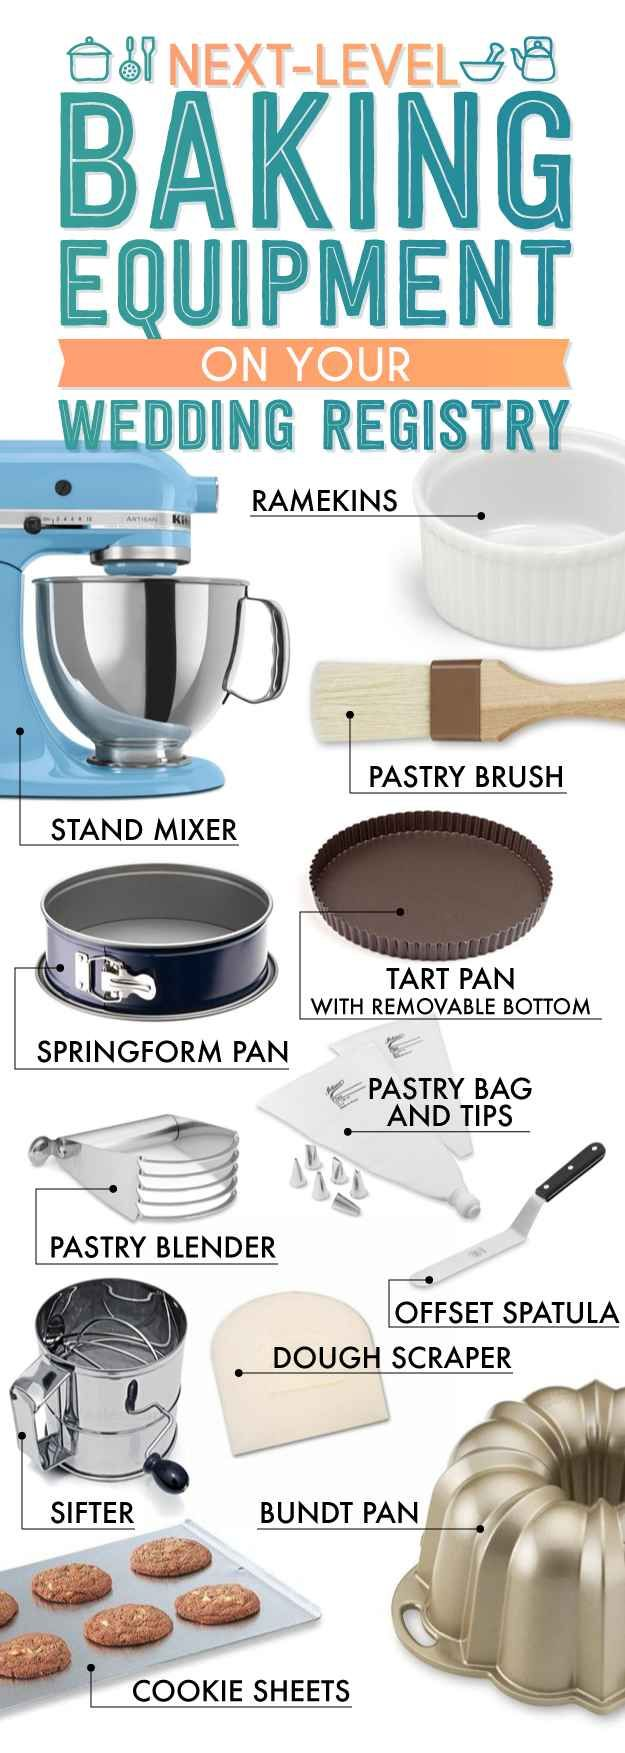 Level Up Baking Equipment.The Essential Wedding Registry Checklist For Your Kitchen